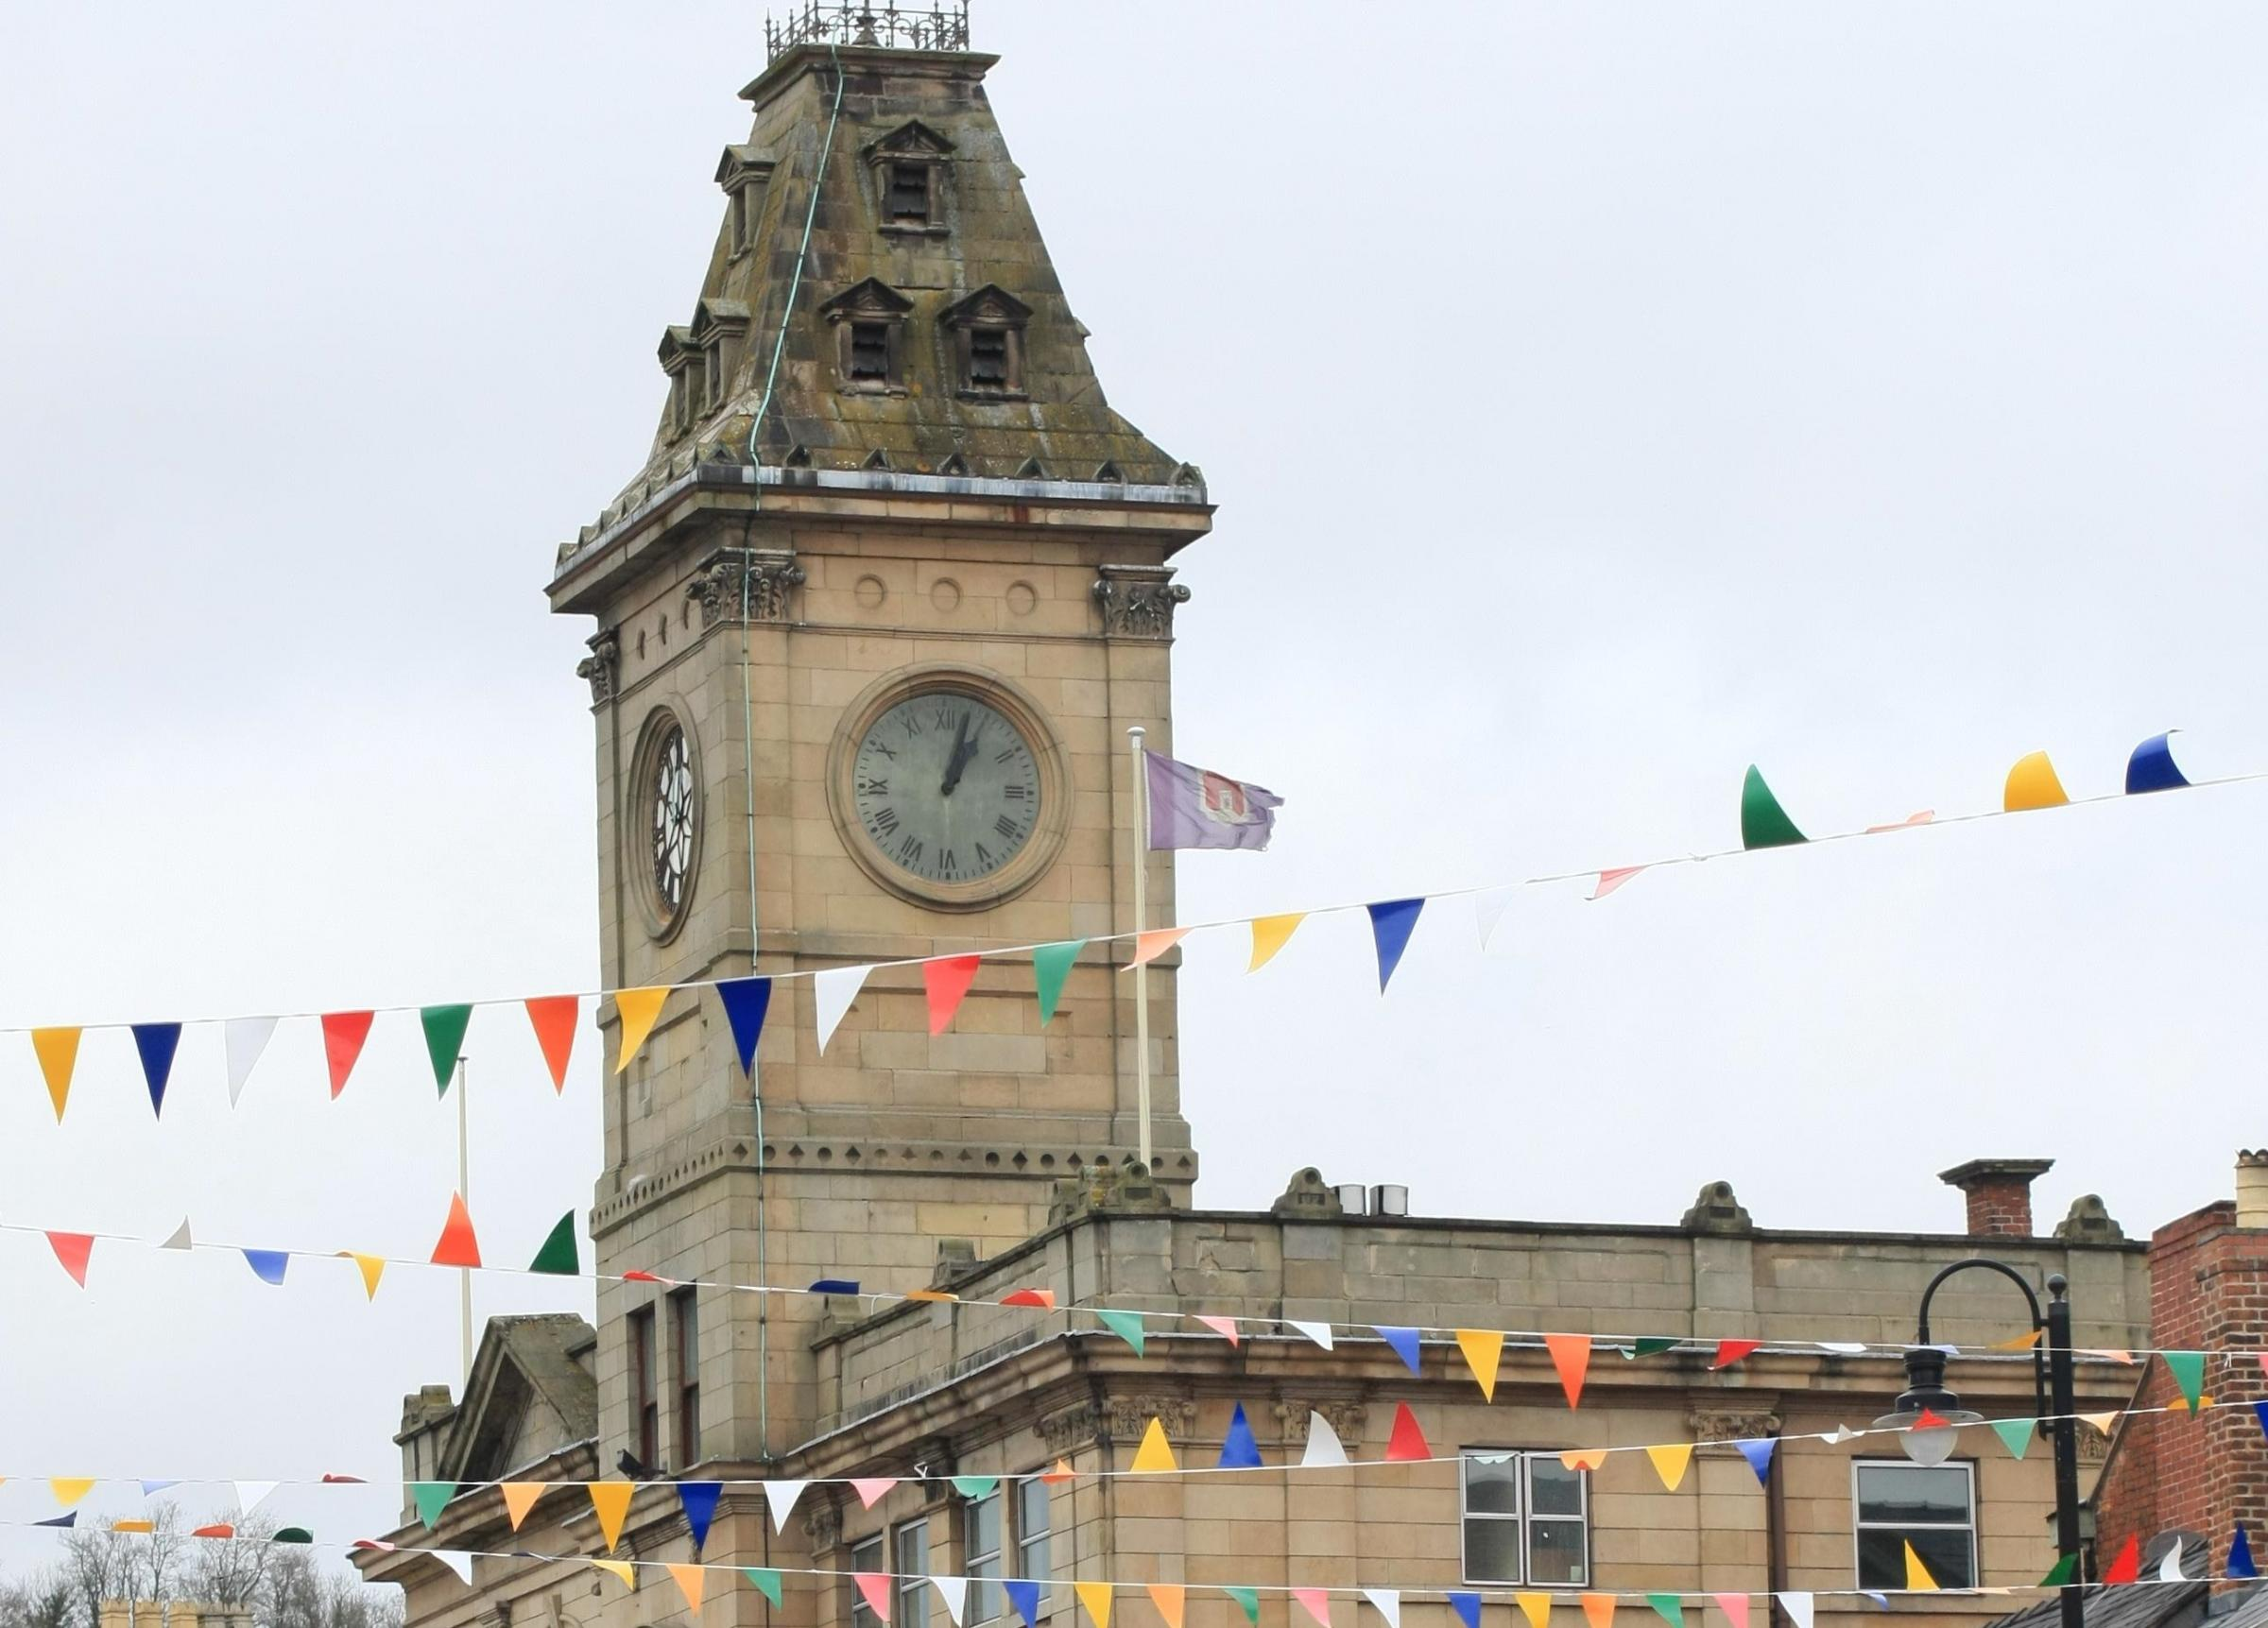 Fire alarm bill for Welshpool Town Hall goes up to nearly £40K - Powys County Times